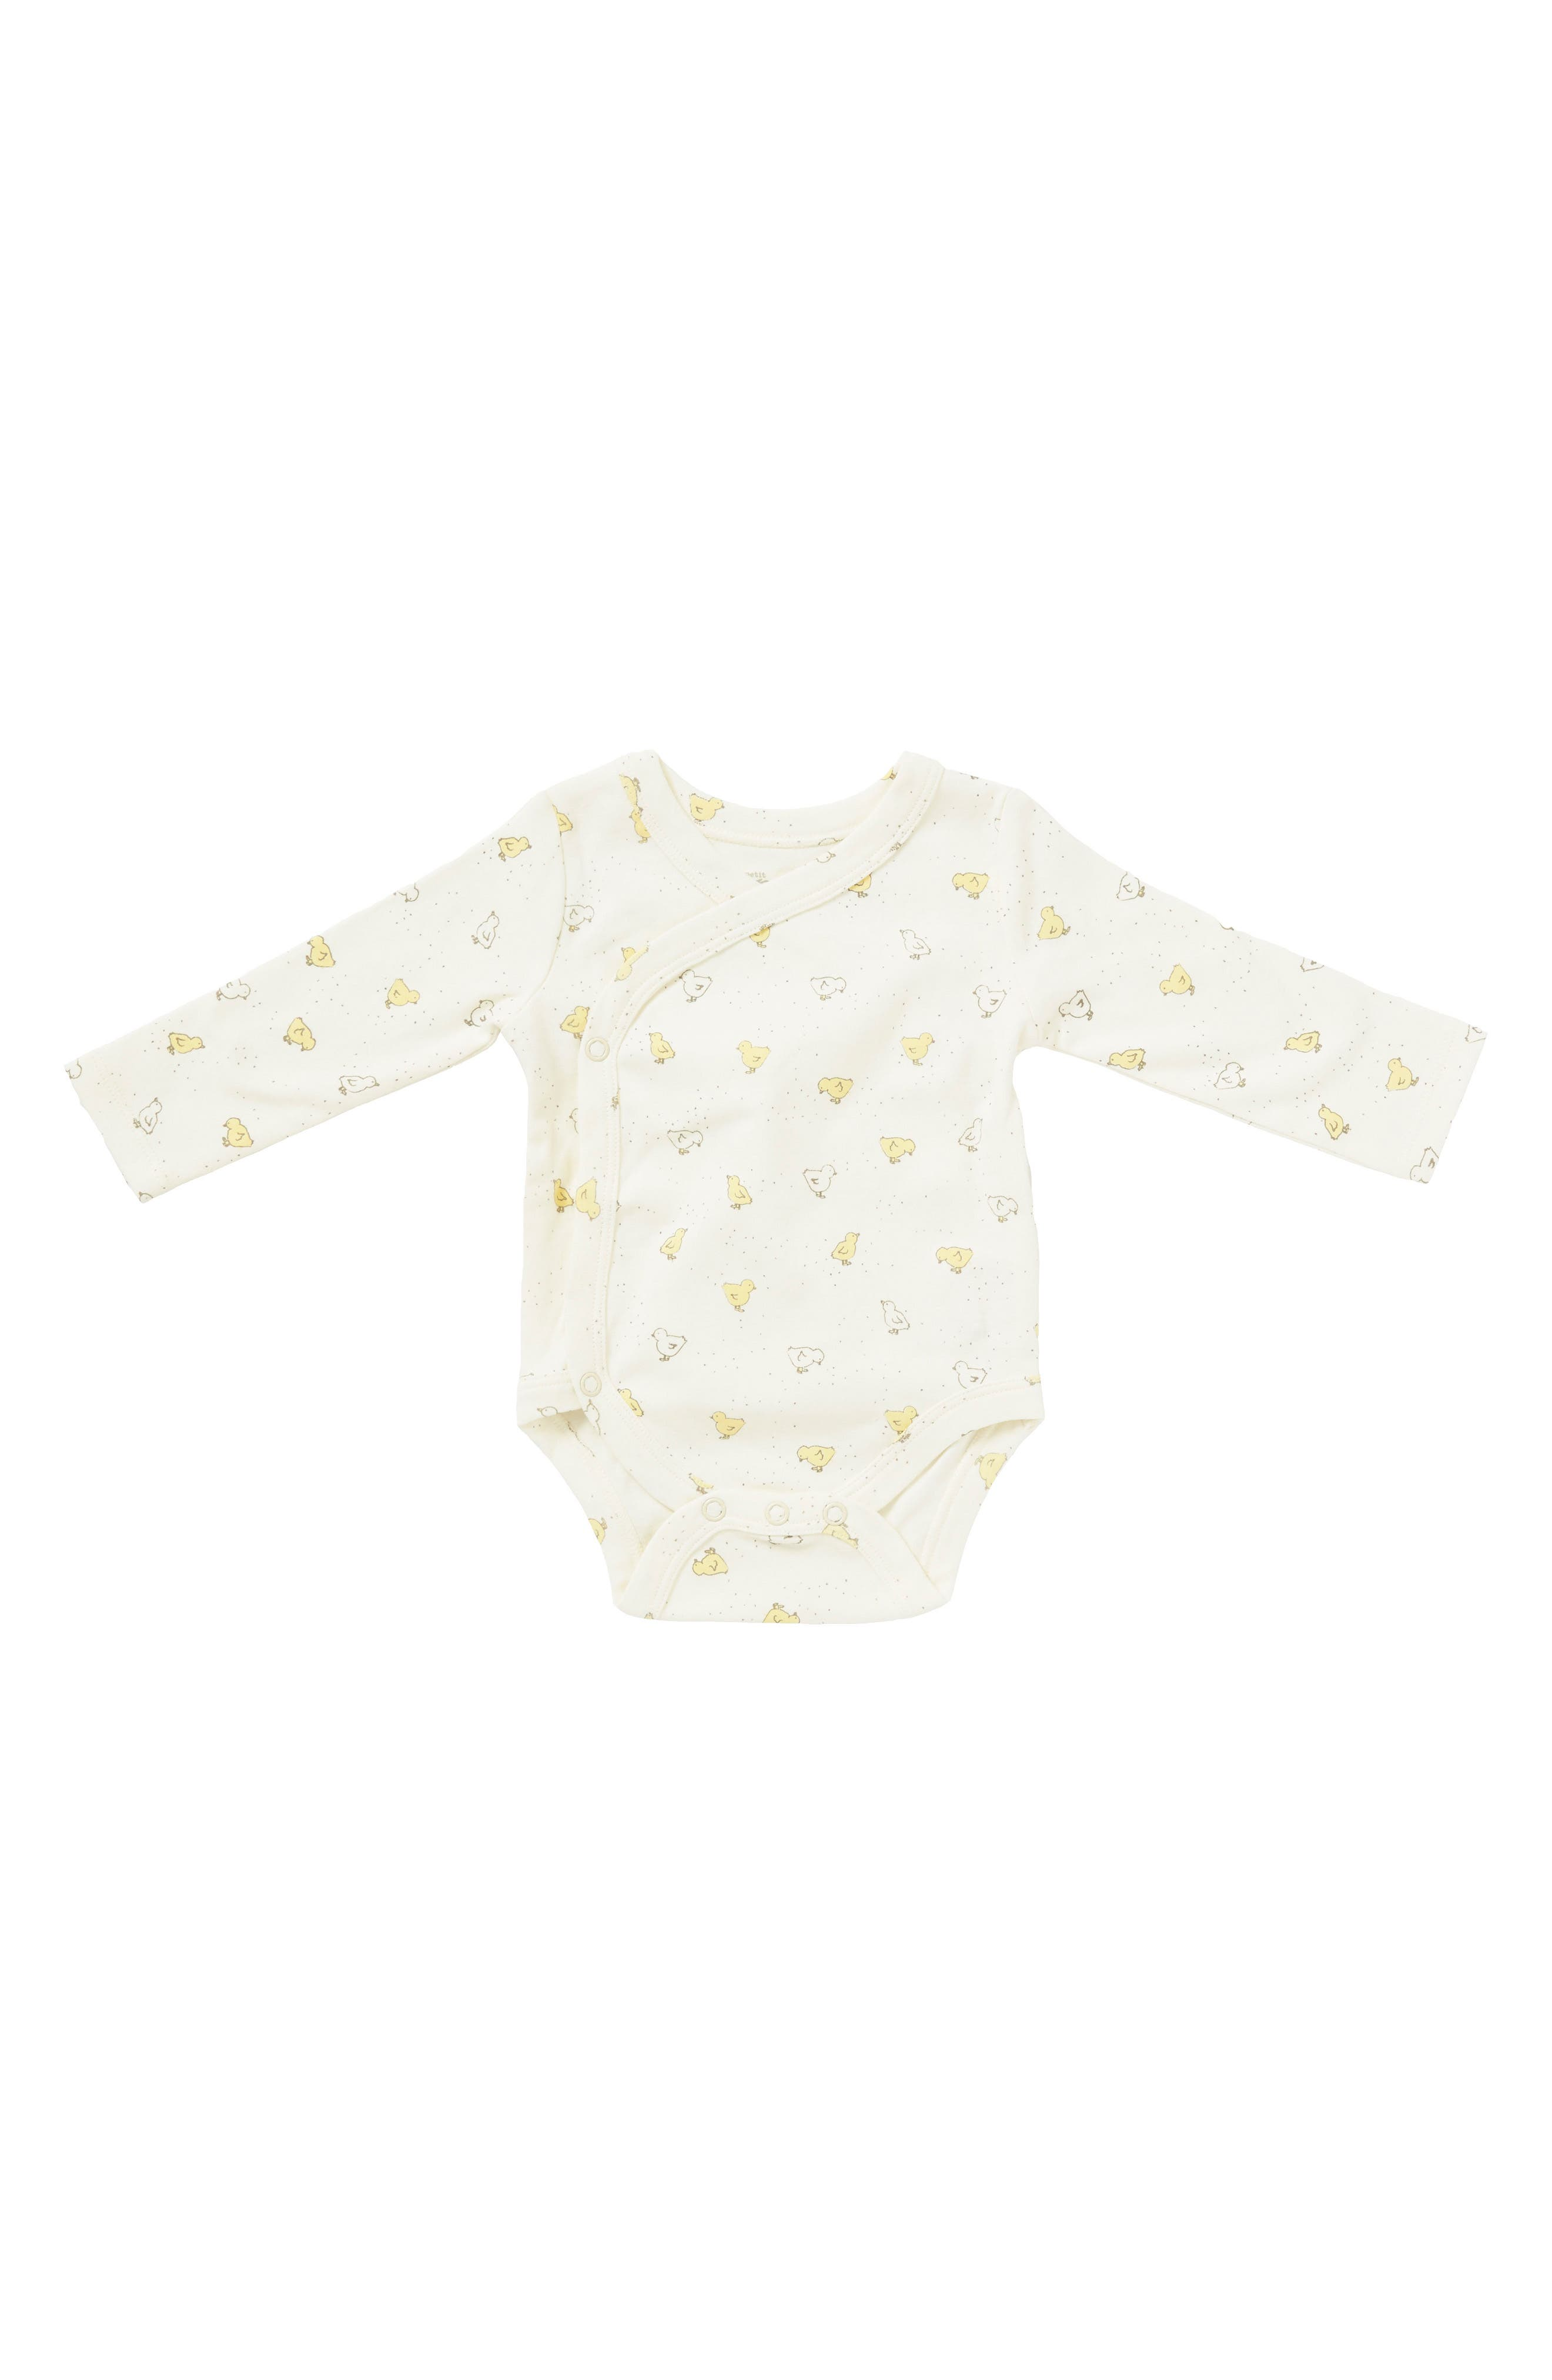 Baby Chick Bodysuit,                             Main thumbnail 1, color,                             Ivory